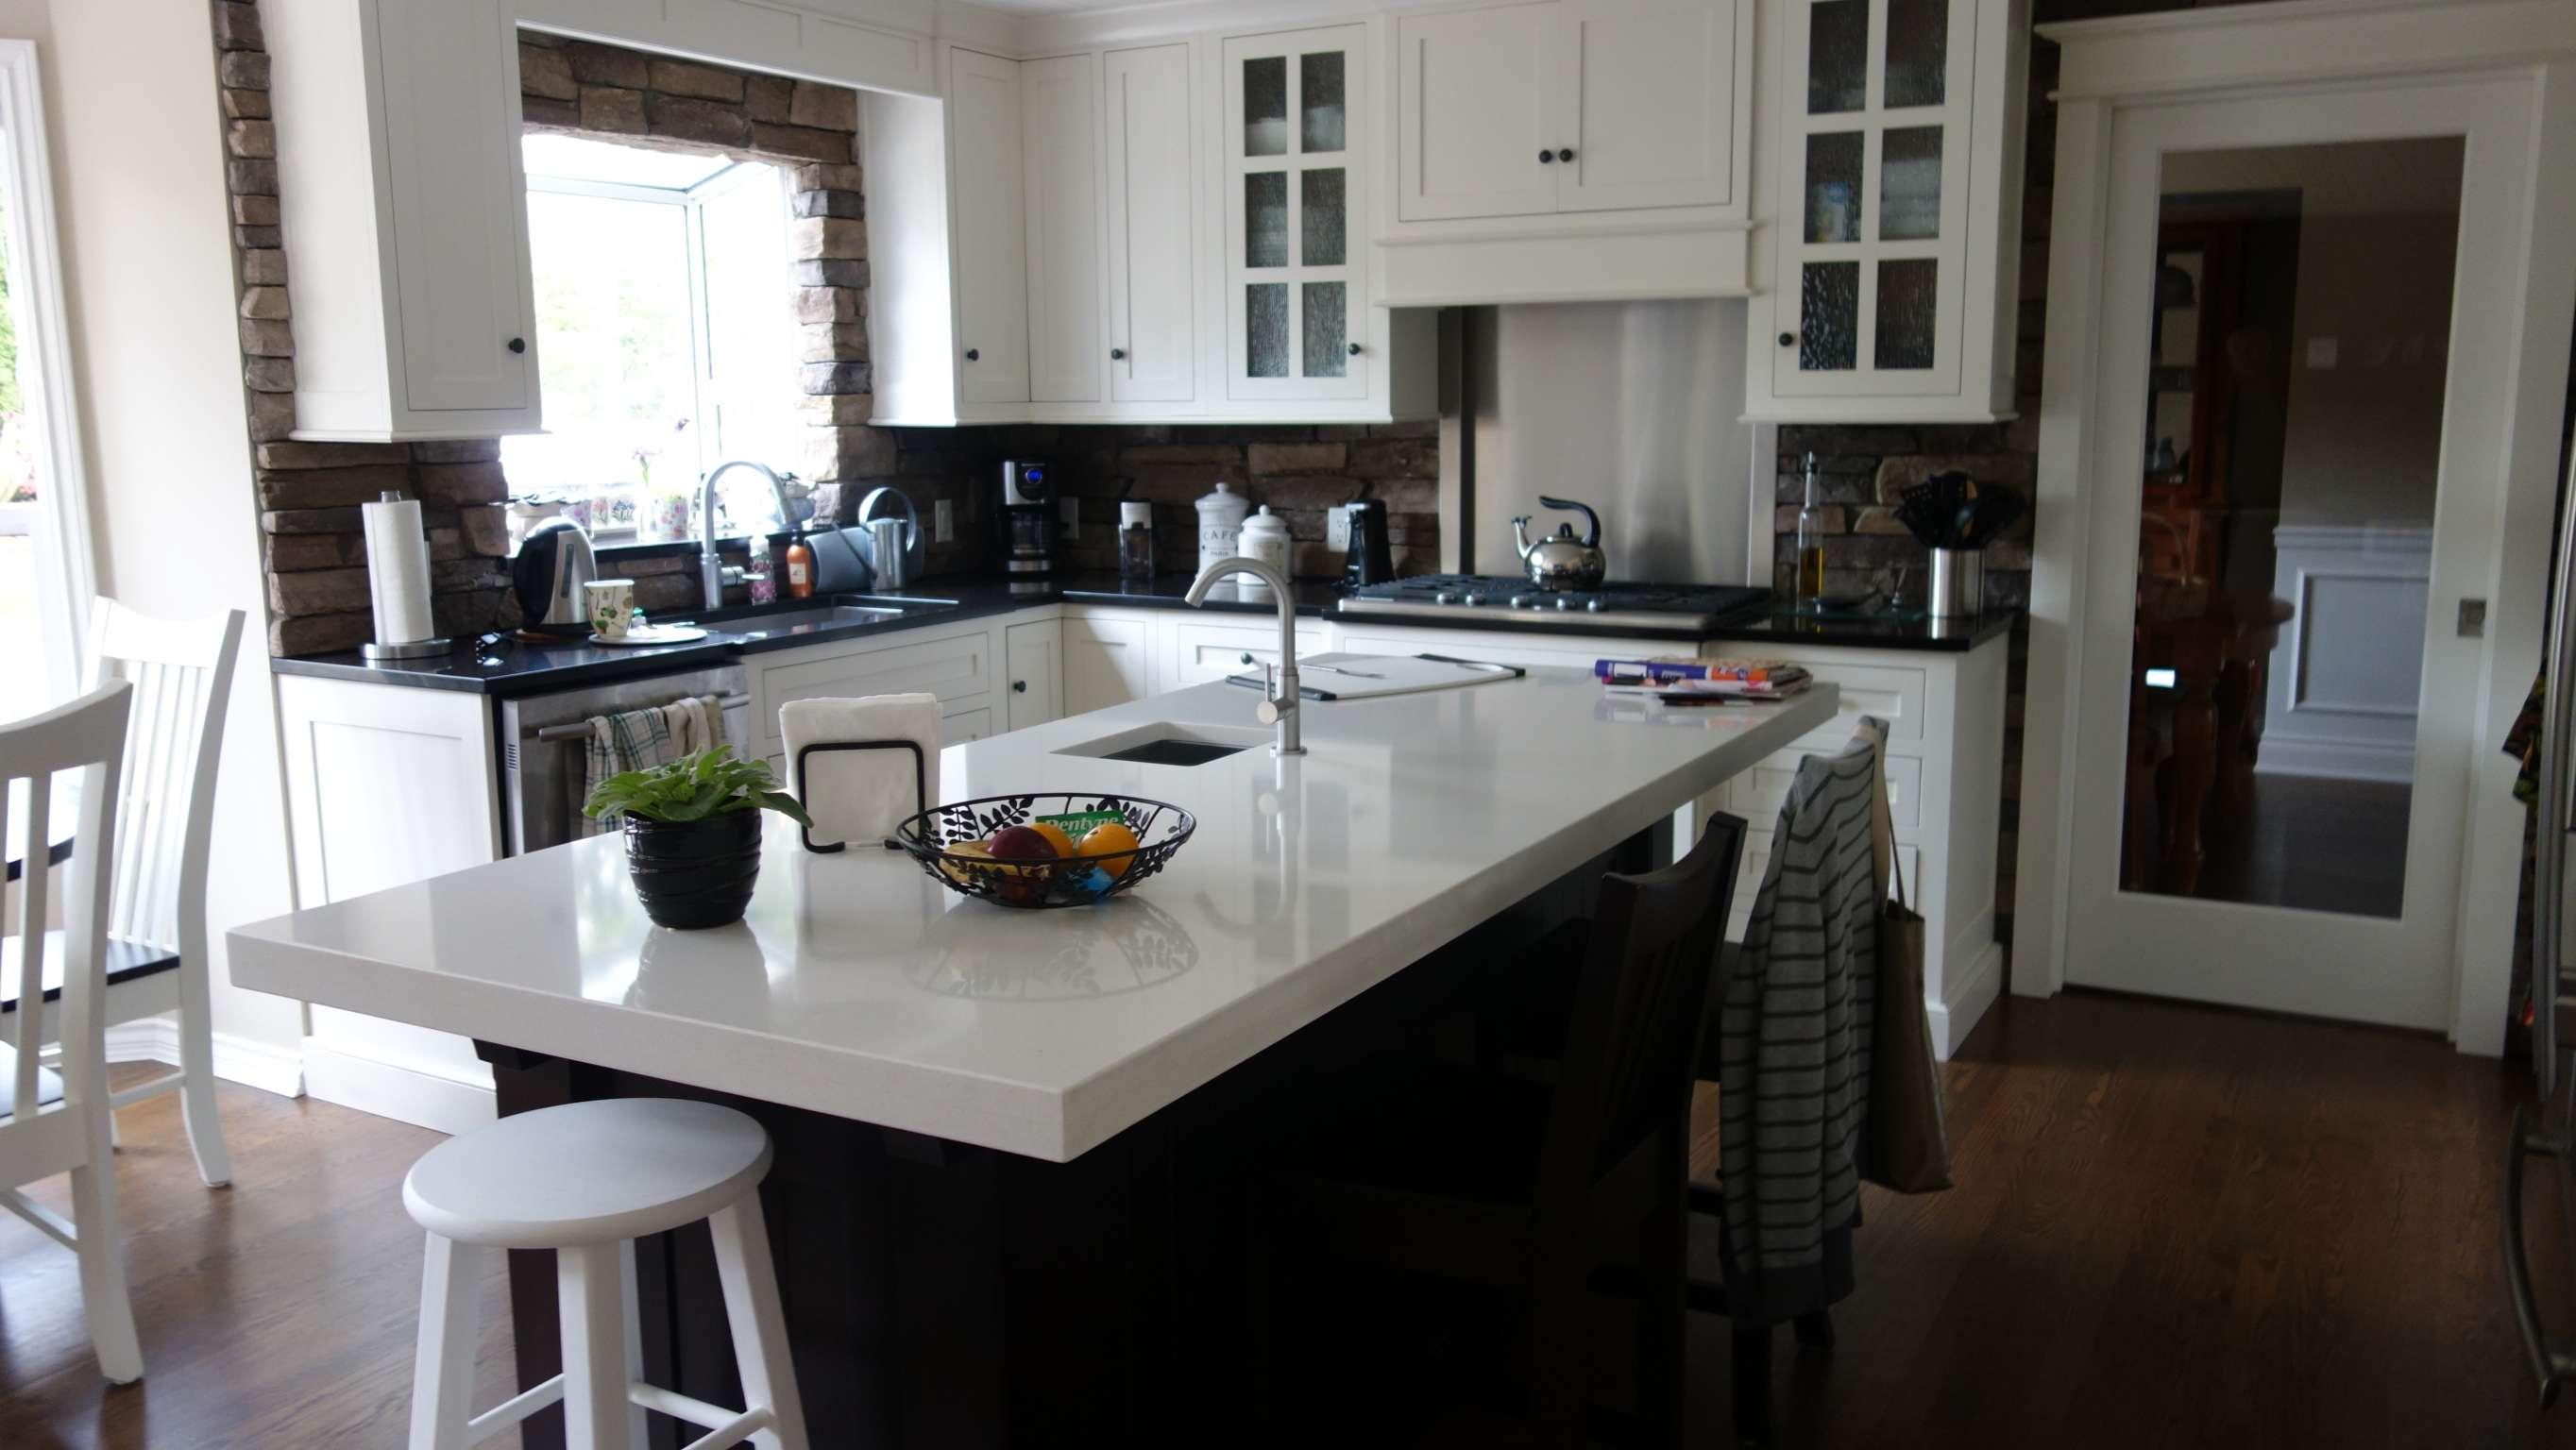 completed kitchen reno